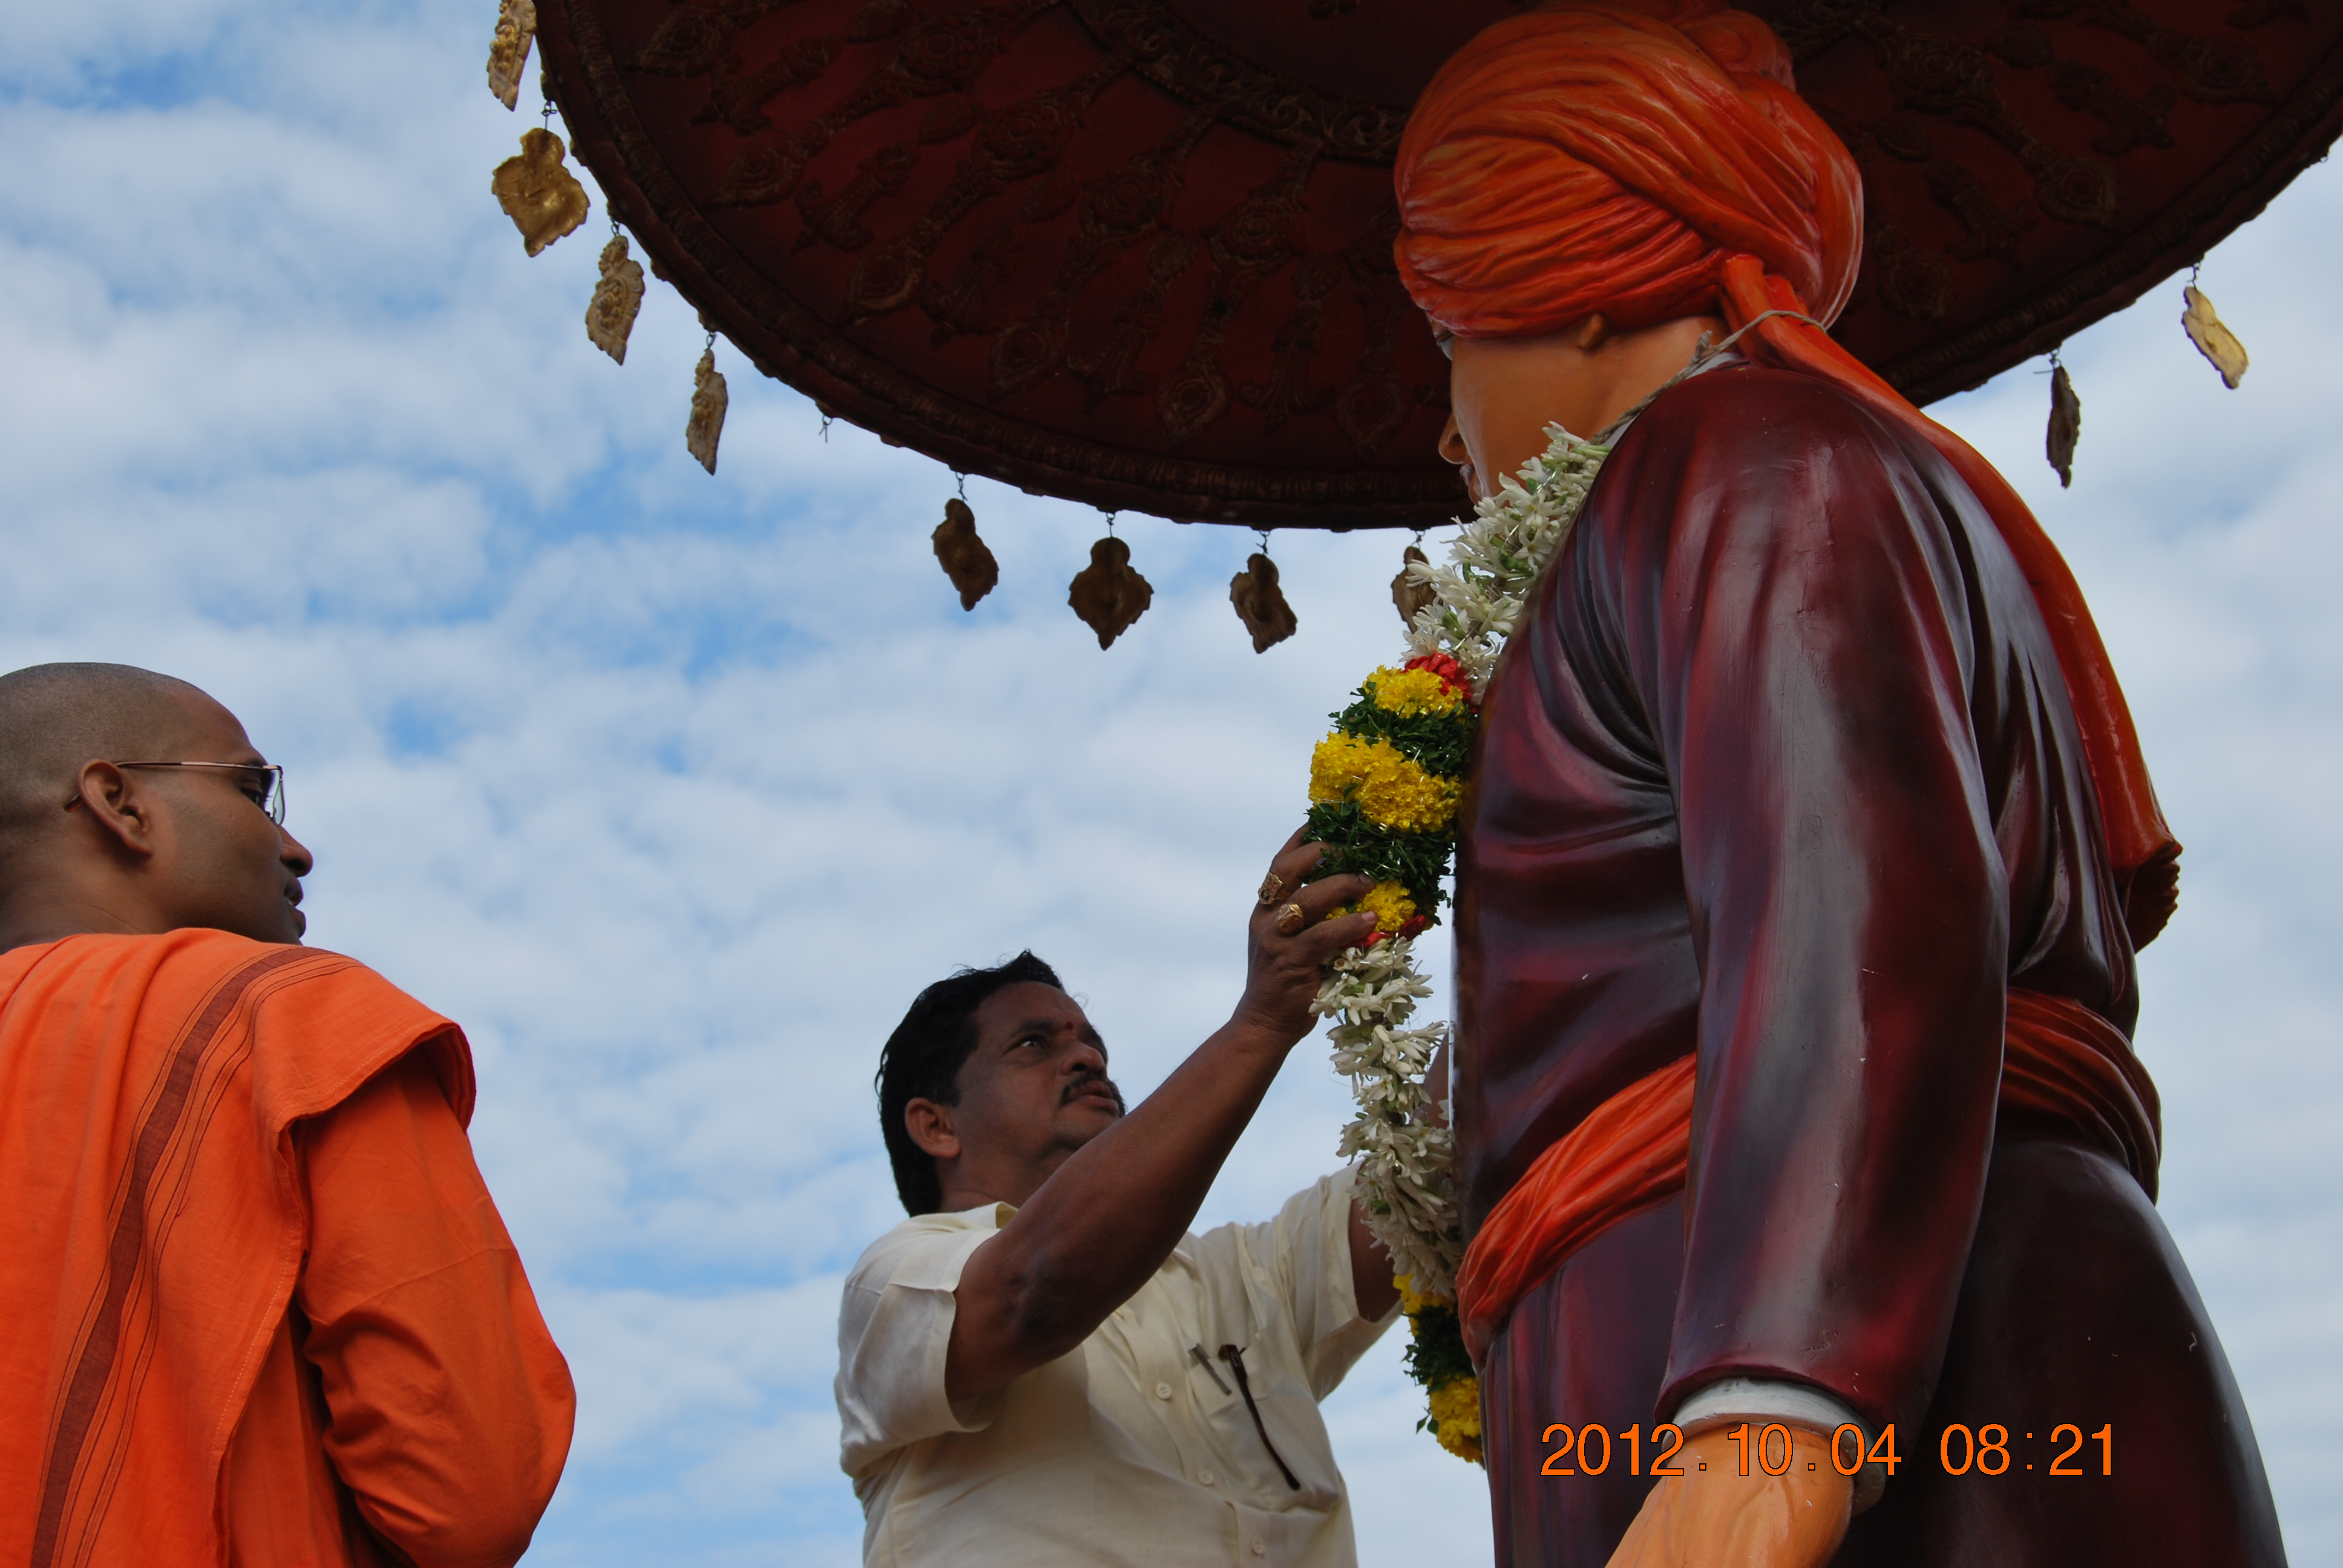 Municipall commissioner garlanding the image of Swamiji